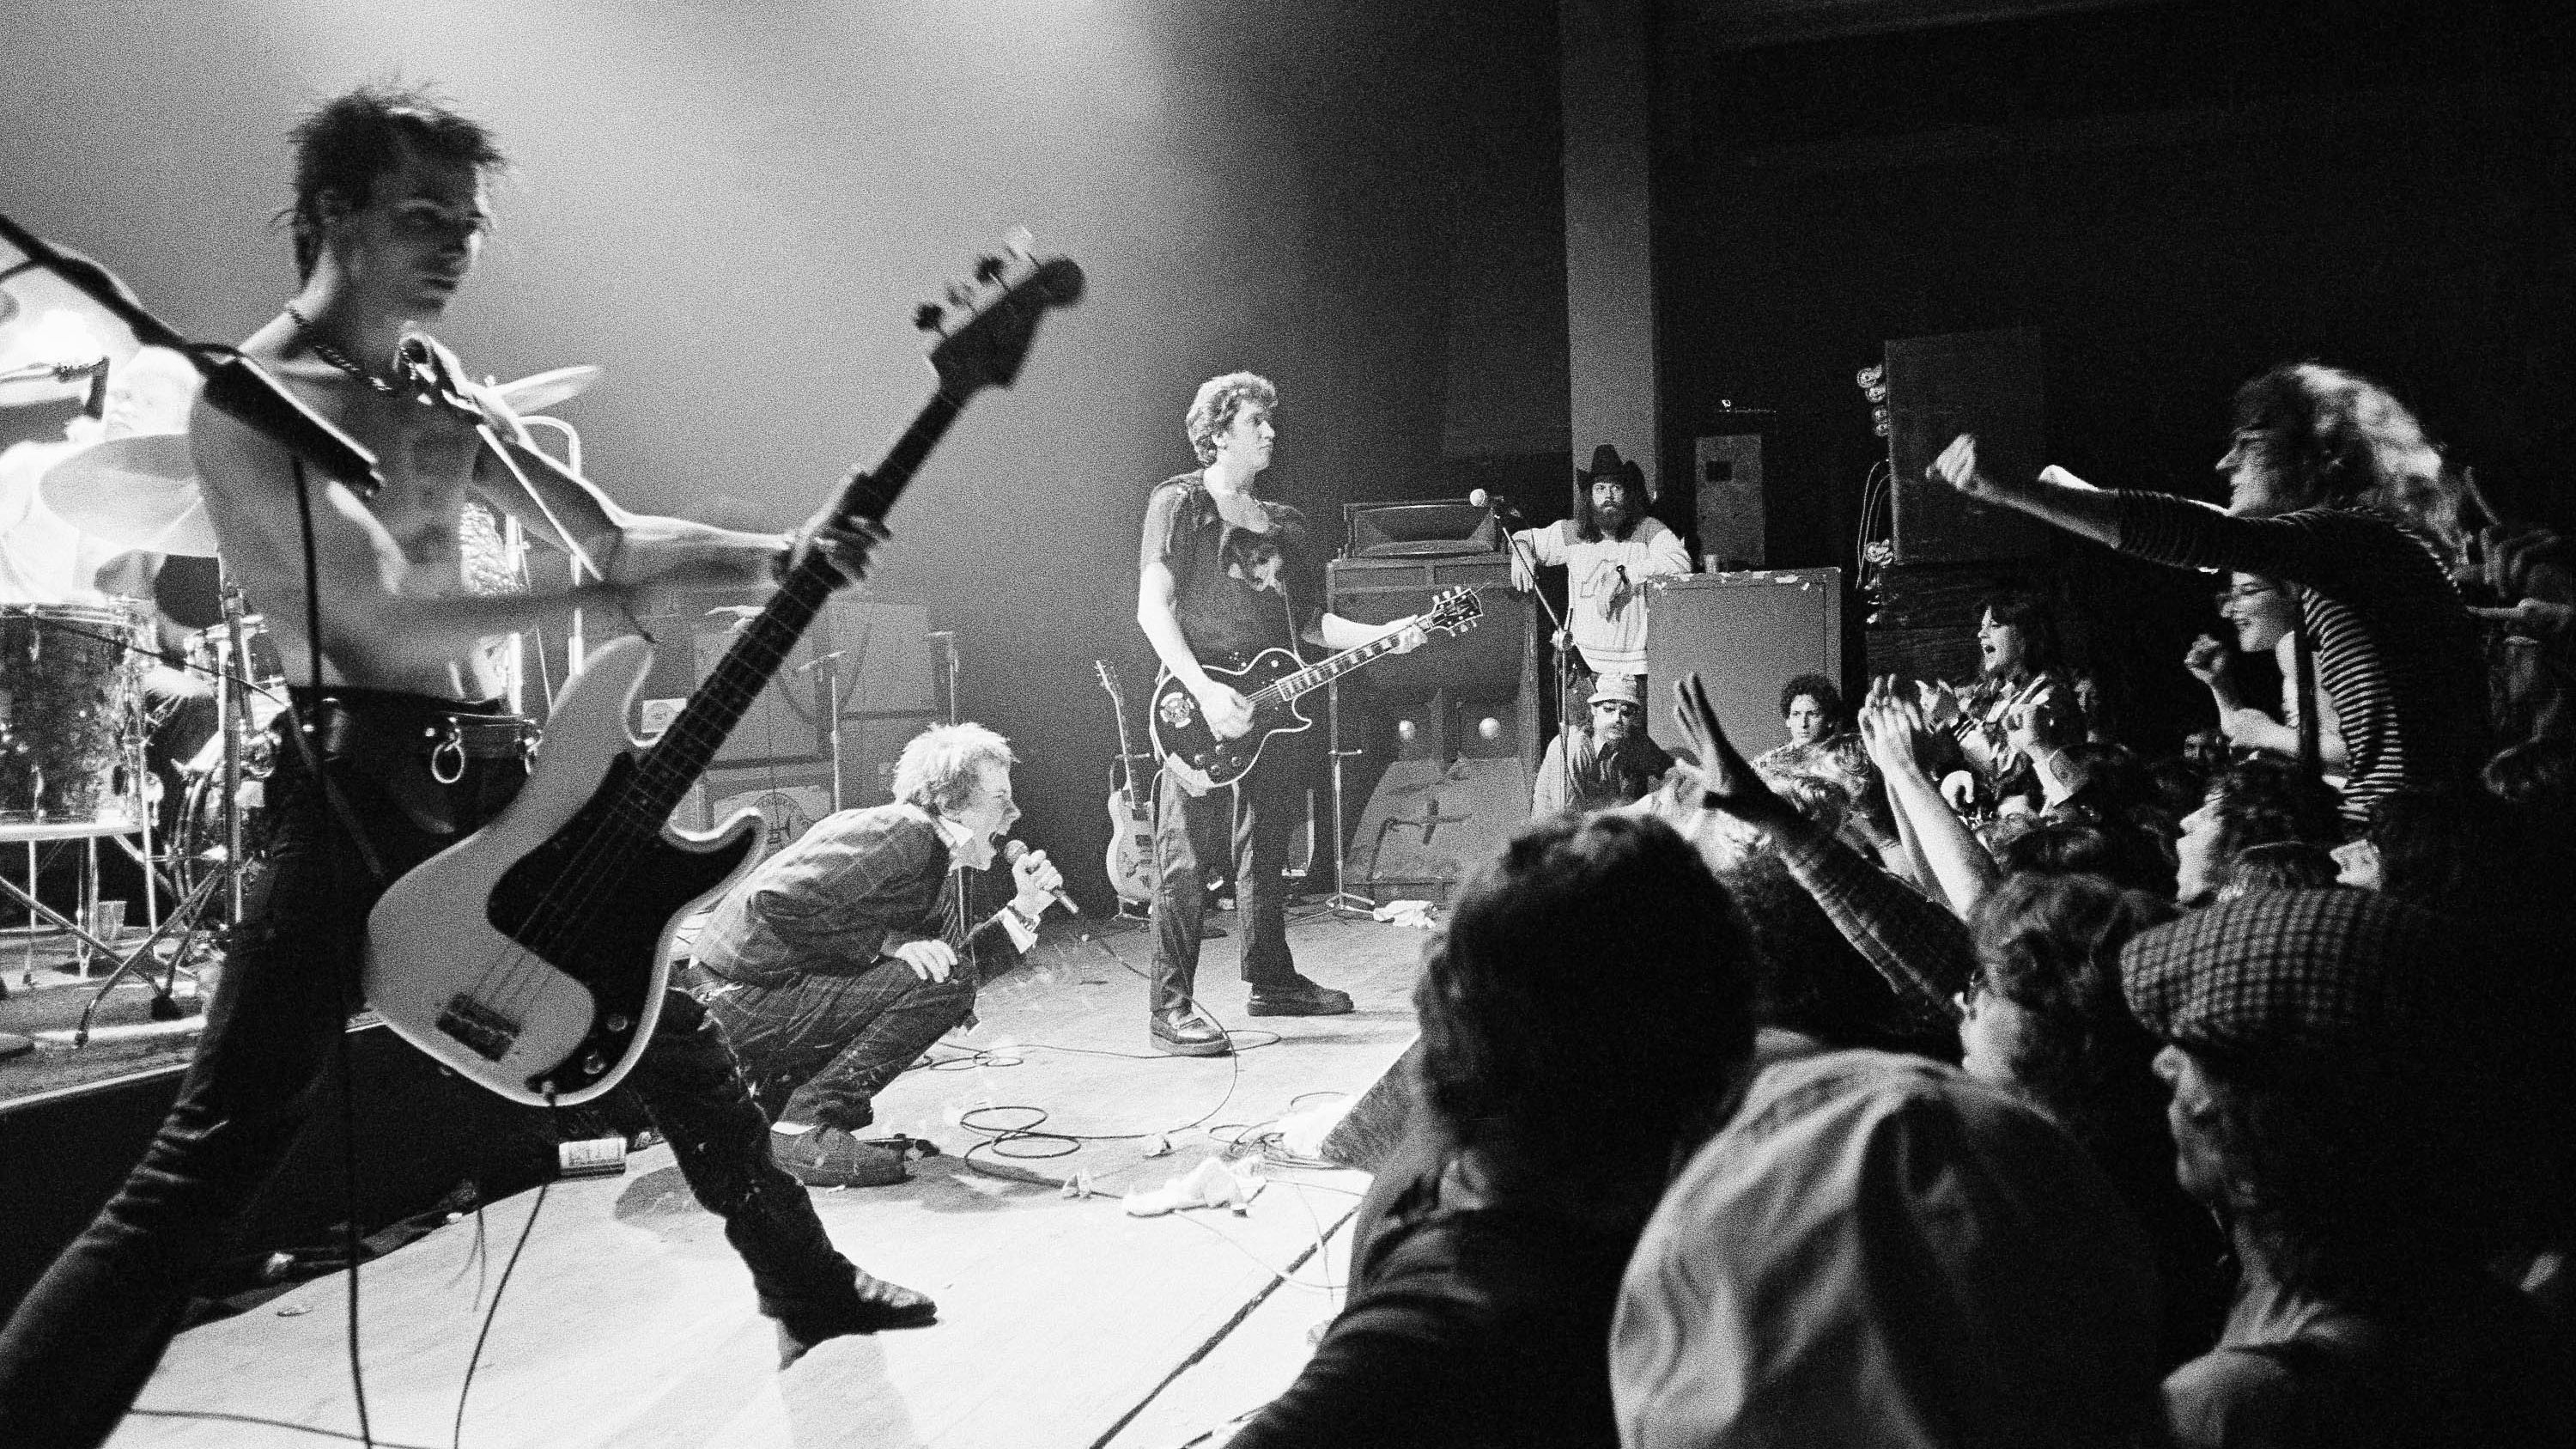 """English punk rock group """"Sex Pistols"""" get a form of audience participation on January 7, 1978 in Memphis, Tenn., during the second stop of their American tour. In left foreground is bass player Sid Vicious while group leader Johnny Rotten crouches in foreground."""